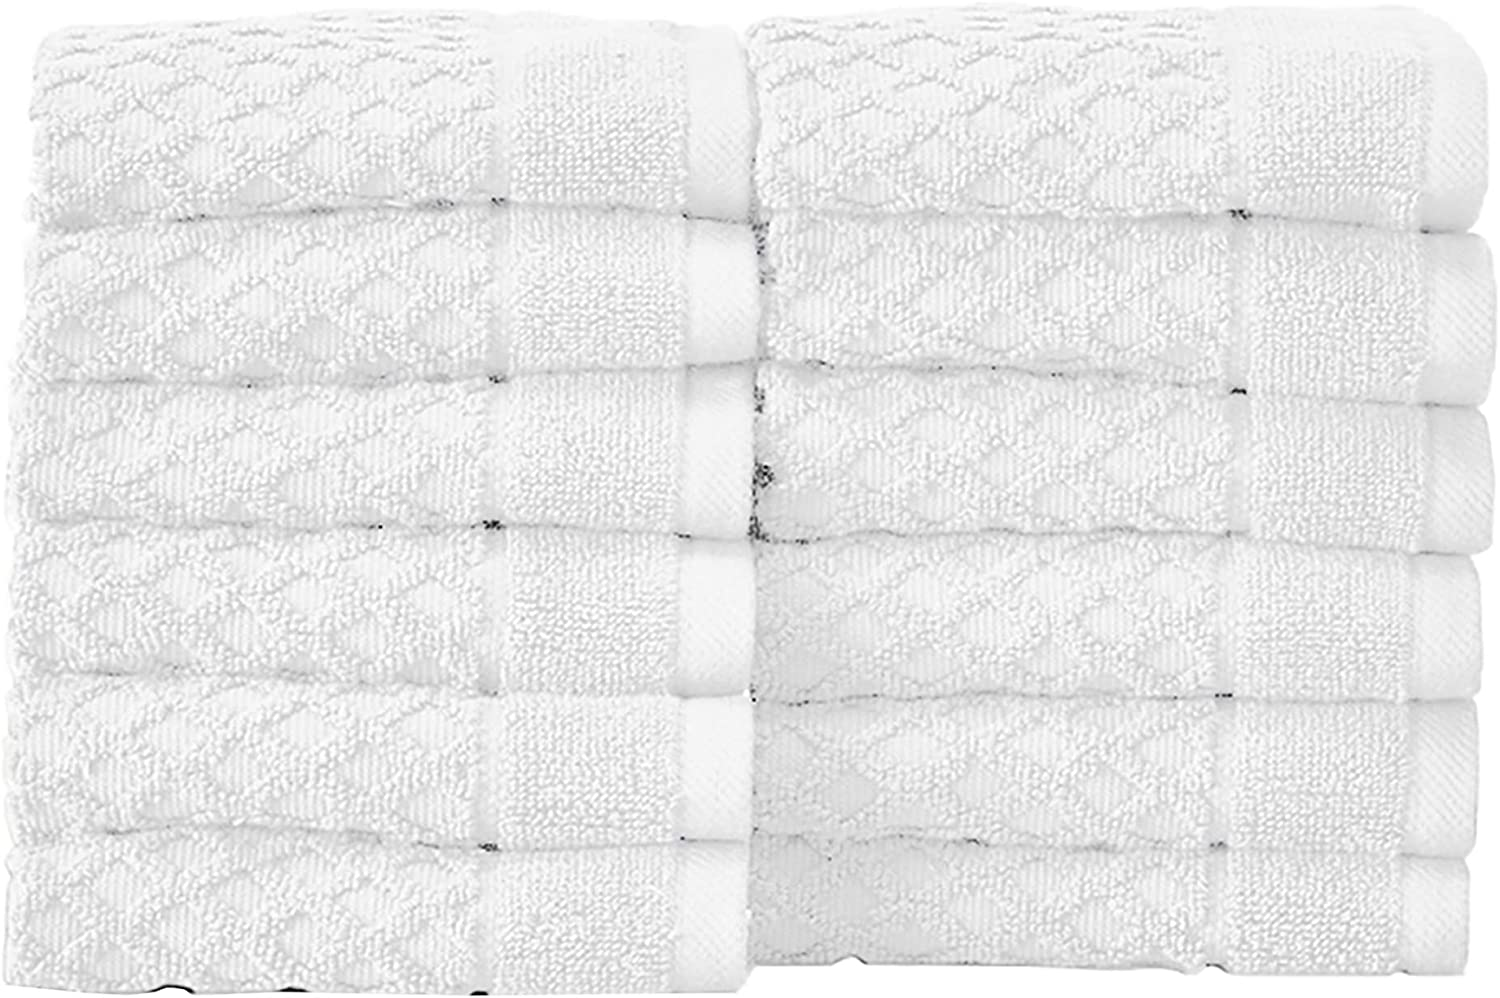 12-Pack Washcloth Set. 100% Cotton Absorbent Quick-Dry Textured Washcloth Towels. Wash Cloths for Bathrooms. Grayson Collection. (Wash 12pk, Optic White)